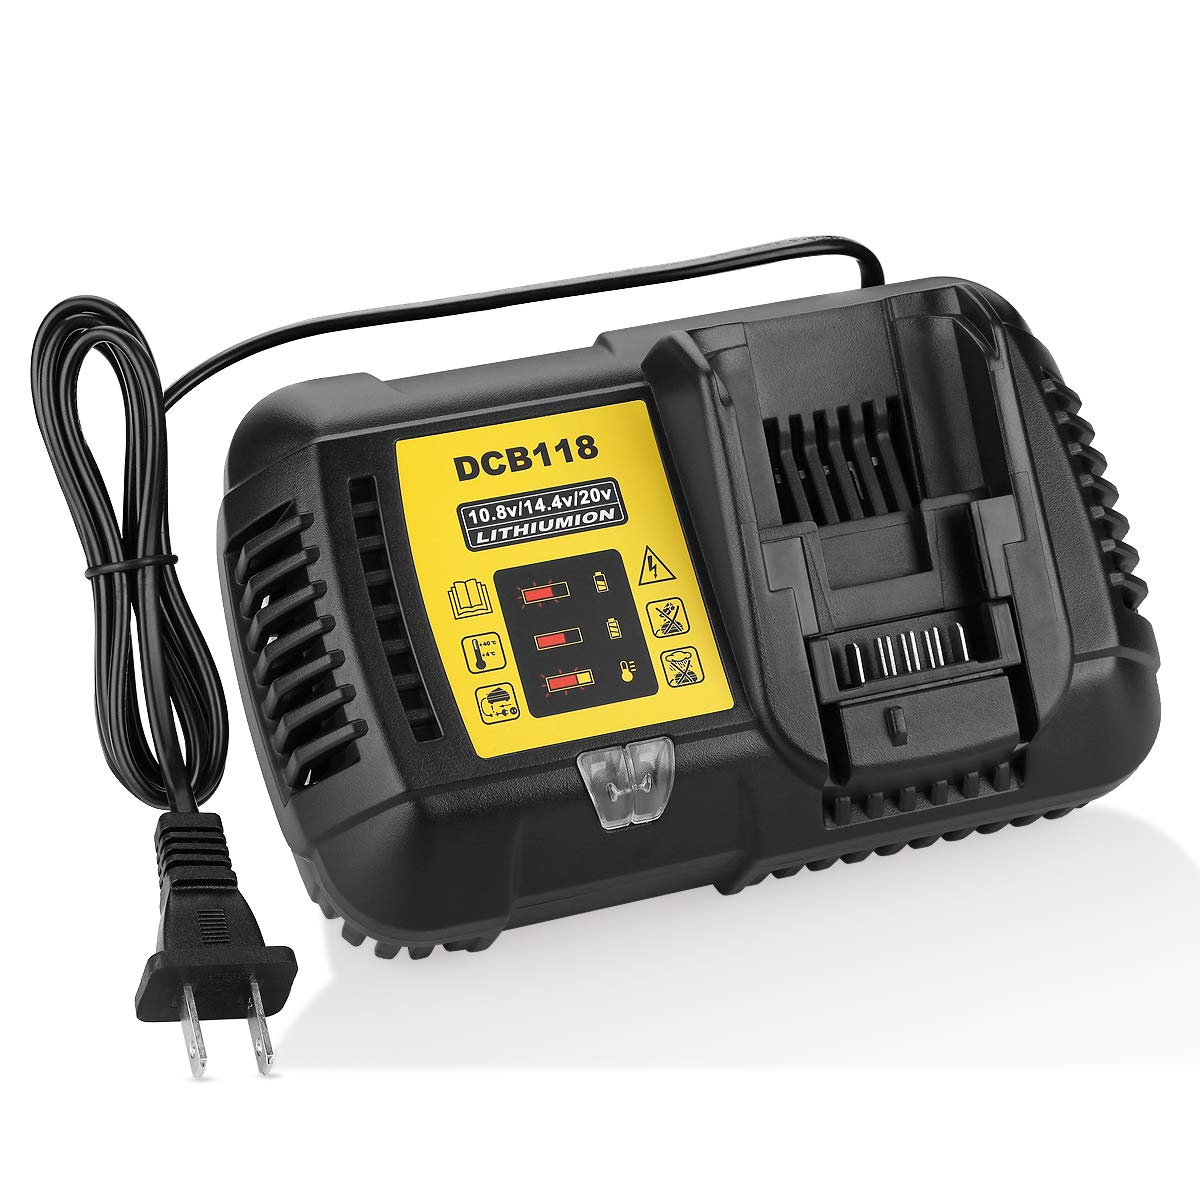 YABELLE DCB118 DCB112 Replacement Battery Charger 4.5A Lithium-Ion Fast charger for Dewalt DCB205 DCB206 DCB203BT DCB204BT DCB127 DCB101 DCB102 Dewalt 20v Battery Charger